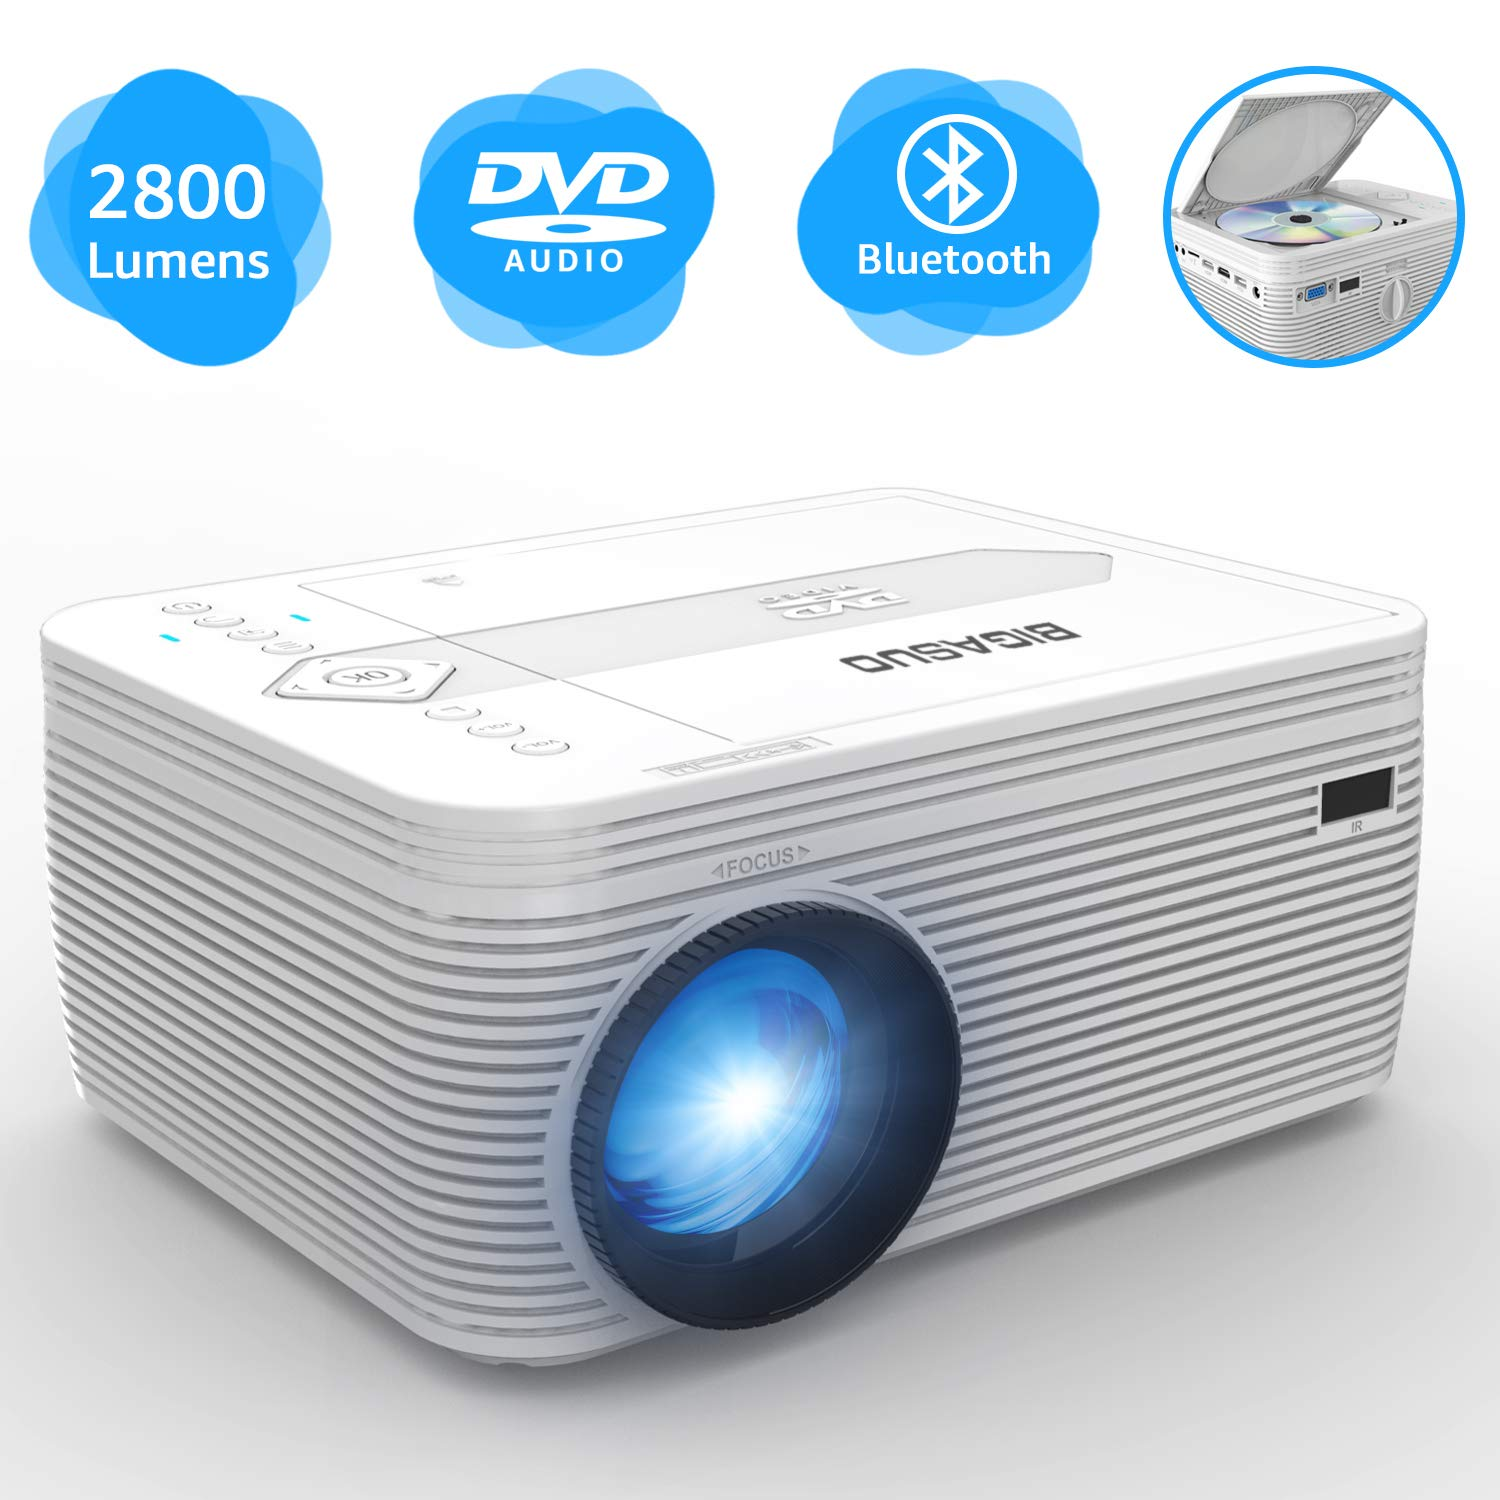 BIGASUO Projector with DVD Player, Portable Bluetooth Projector 2800 Lumens Built in DVD Player, Mini Projector Compatible with Fire TV Stick, Roku, PS4, Xbox, 170'' Display, 1080P Supported by BIGASUO